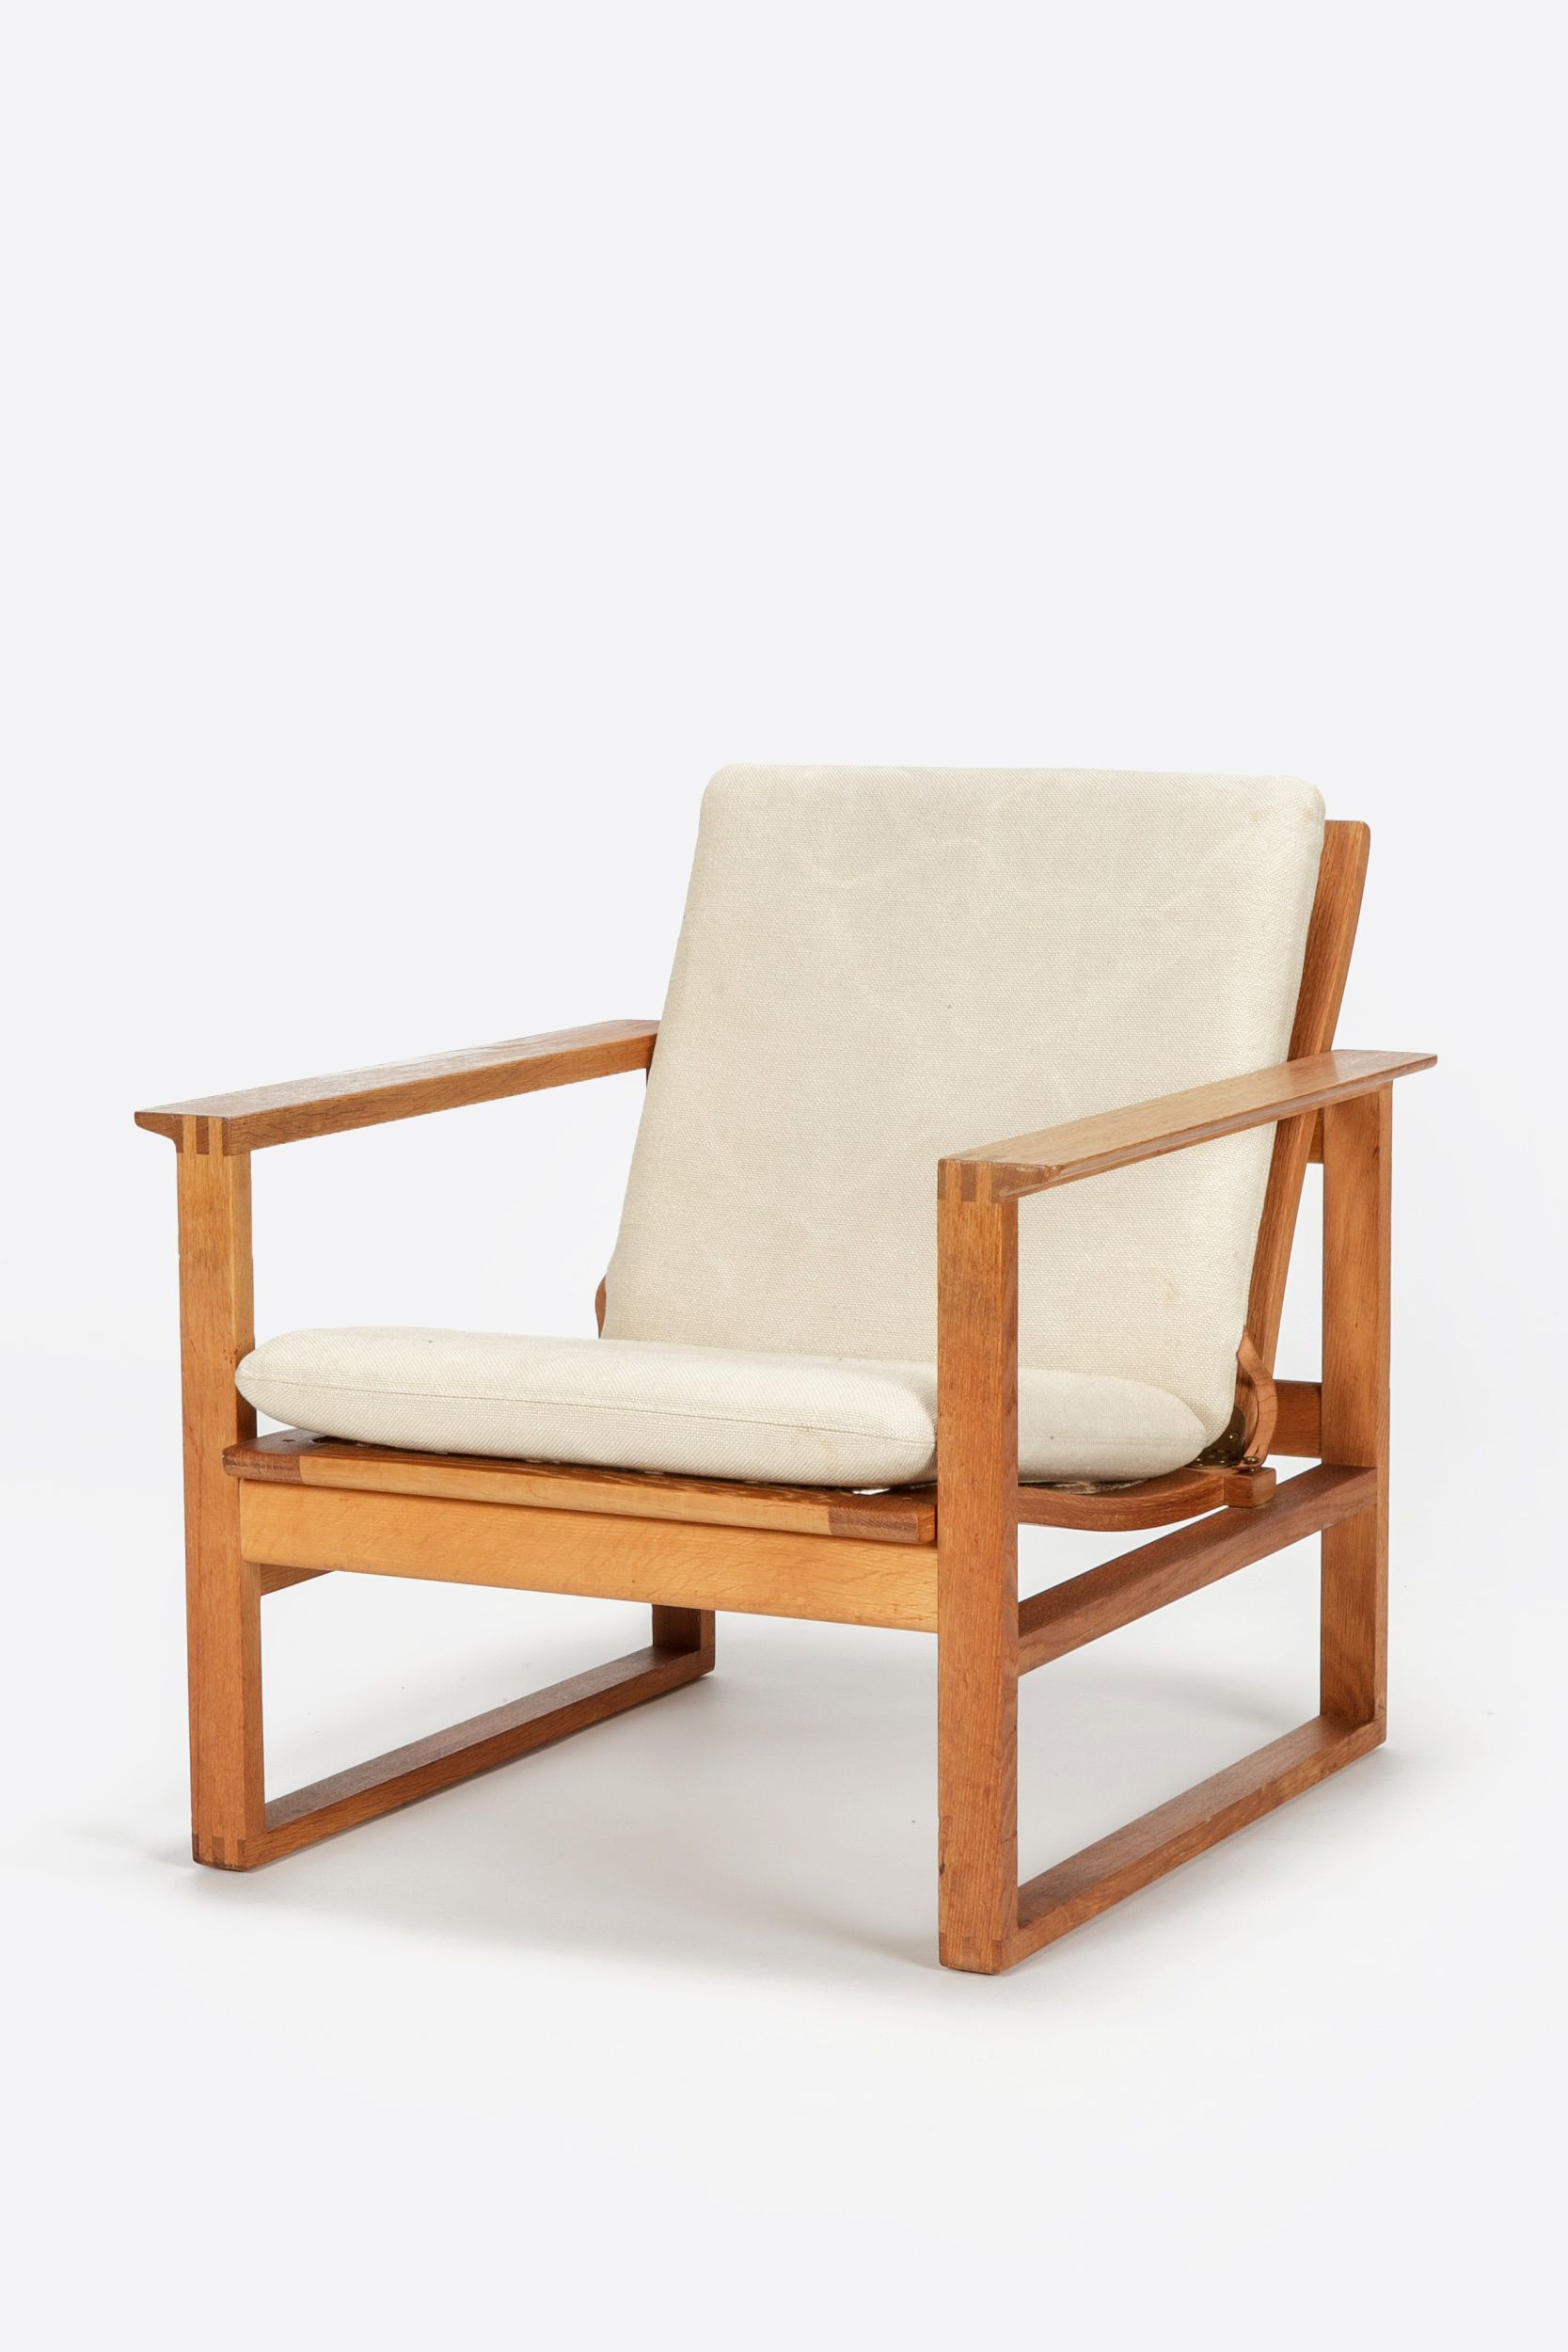 Mogensen Sessel Borge Mogensen Lounge Chair Oak 2256 Seatings In 2019 Pinterest